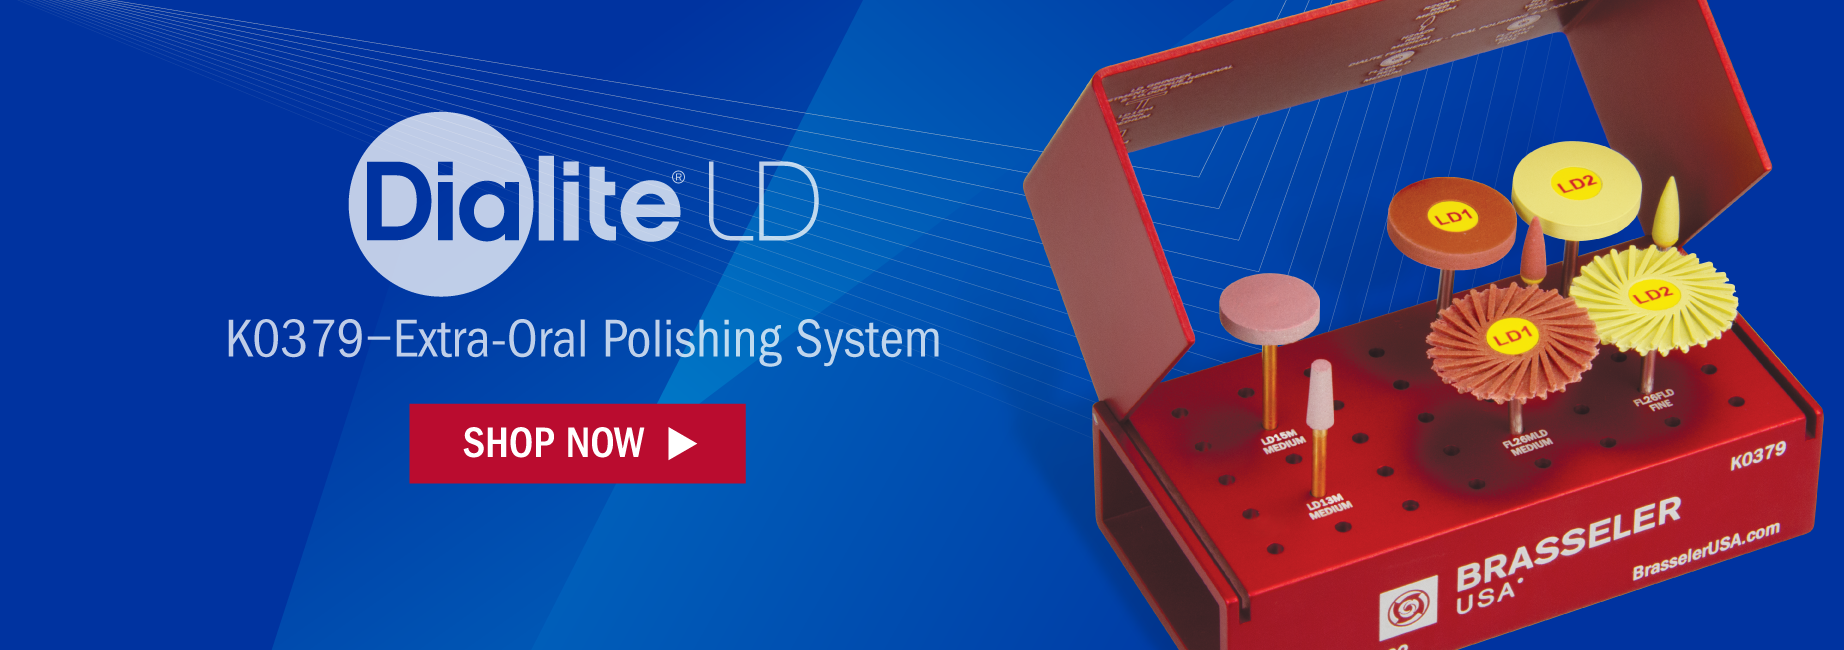 Dialite LD Extra-Oral Polishing System from Brasseler USA